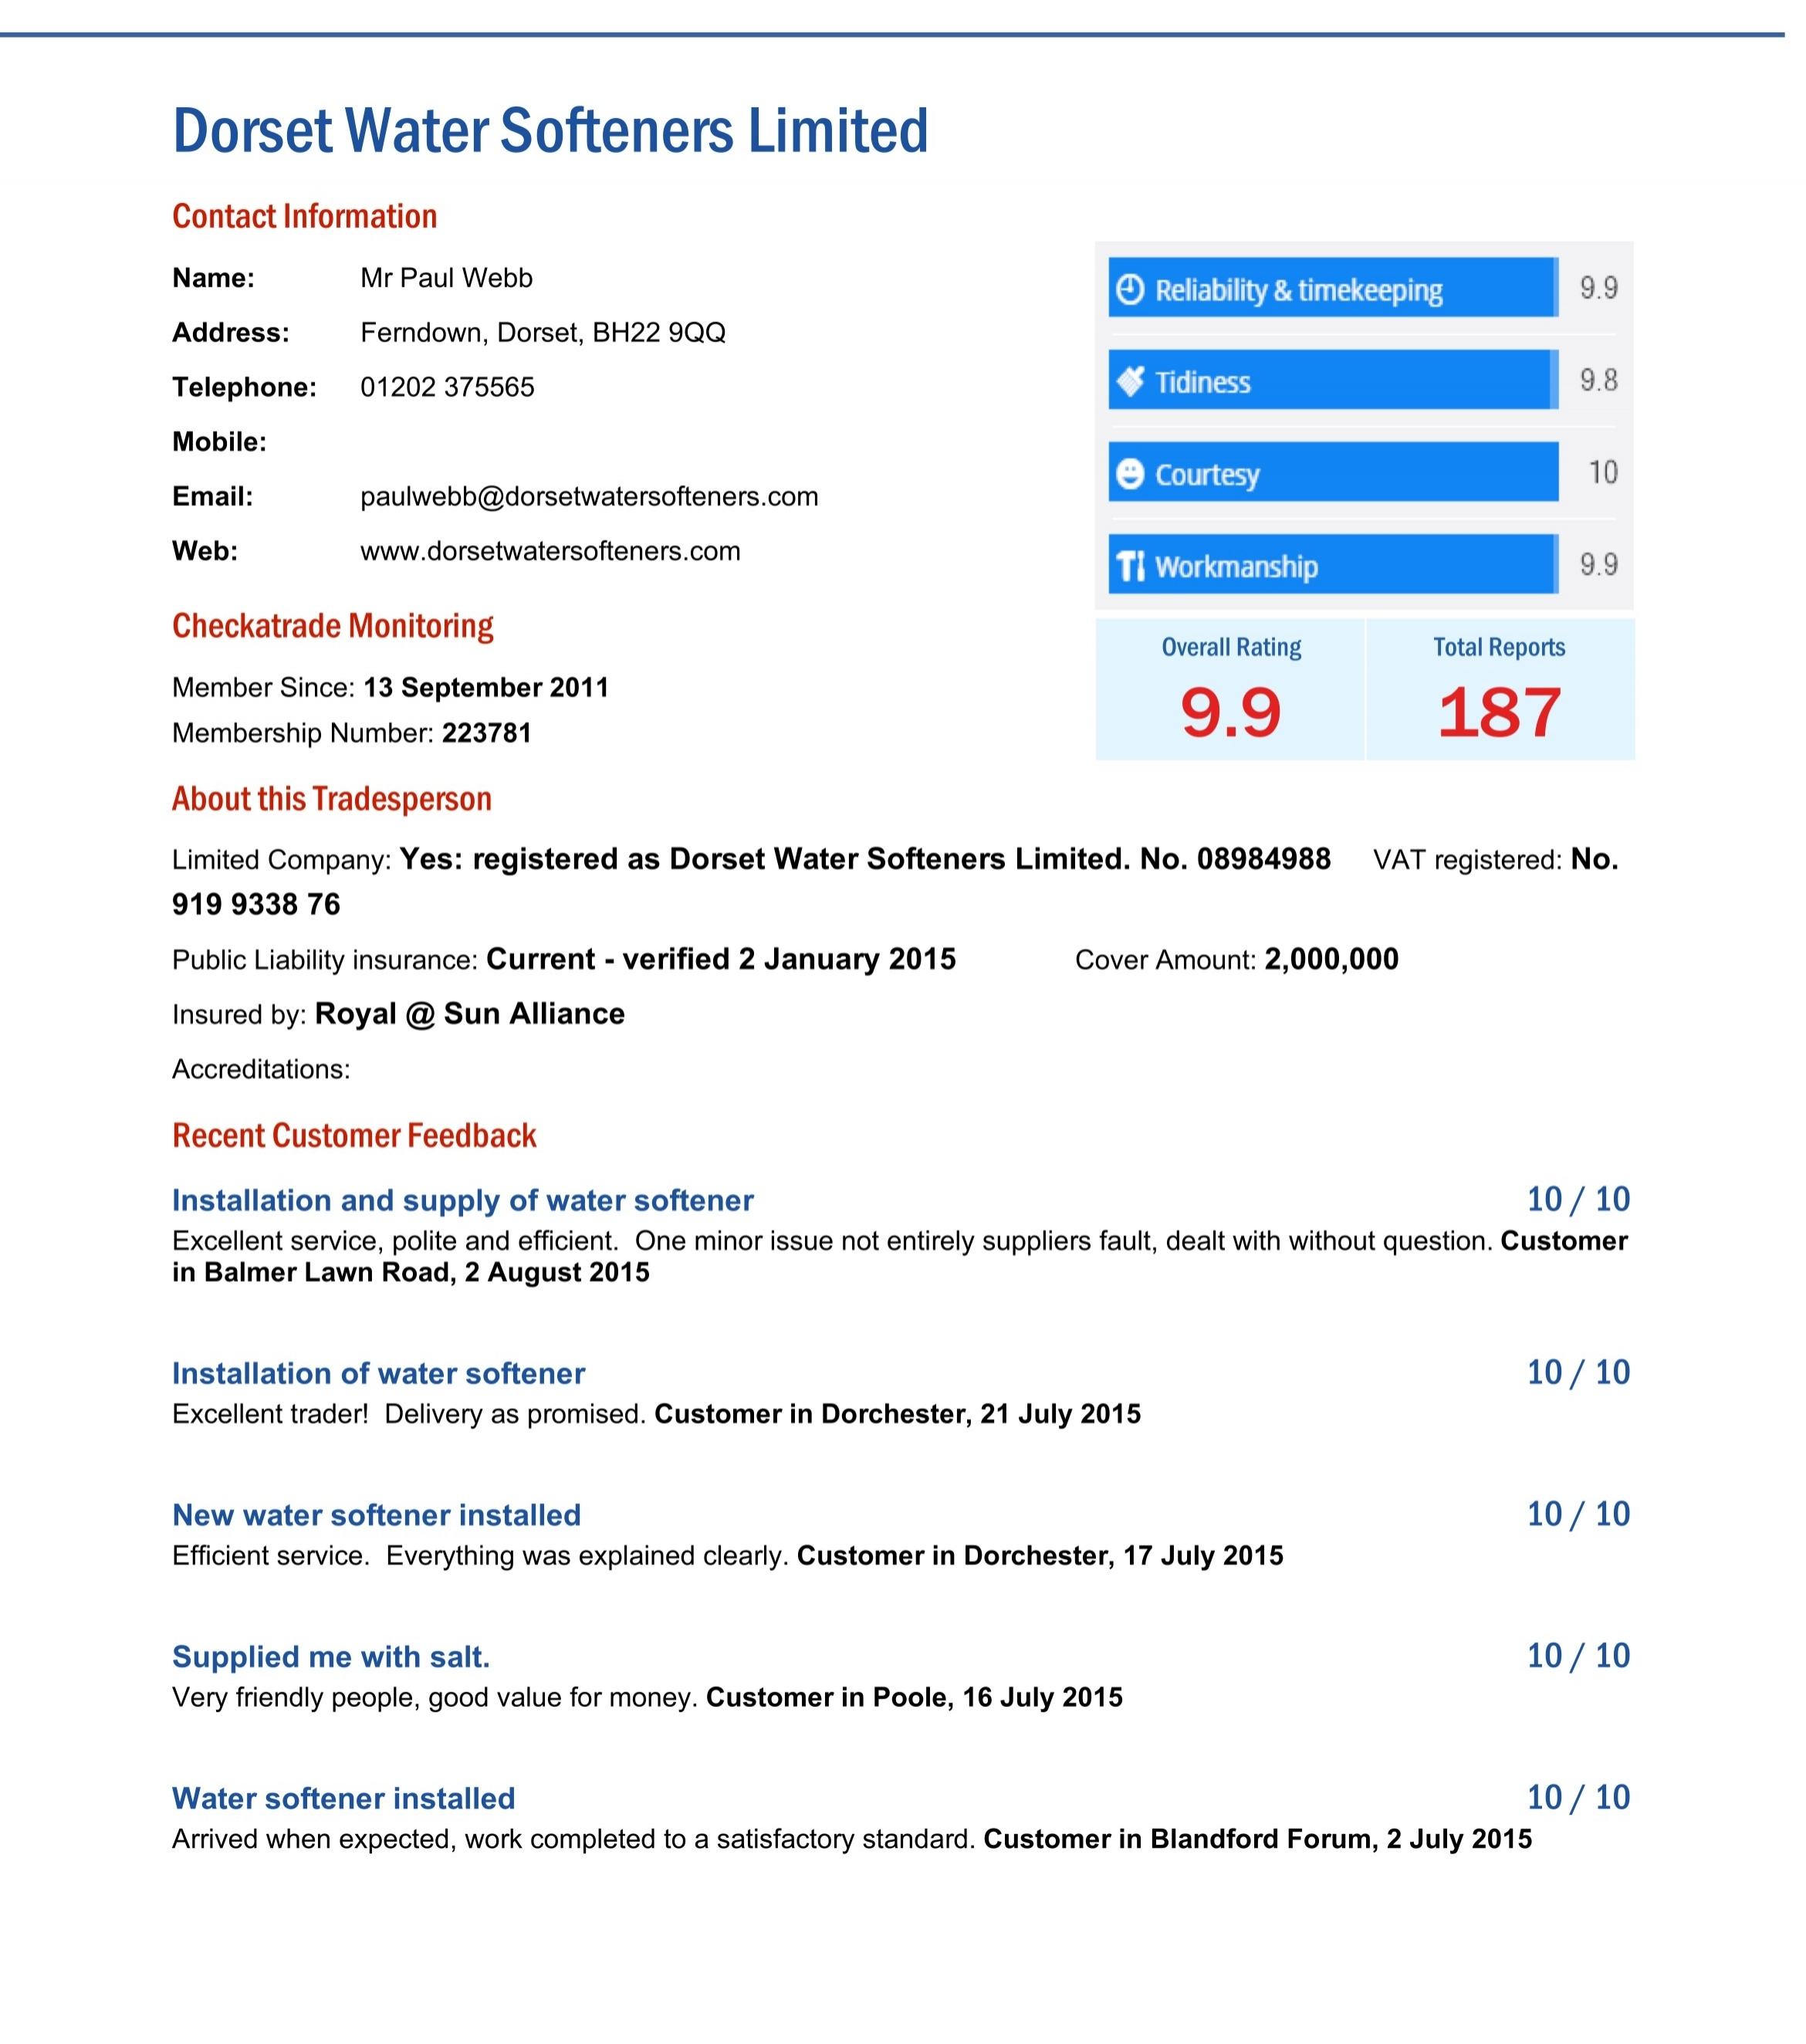 dorset water softeners top rated water softener company in dorset